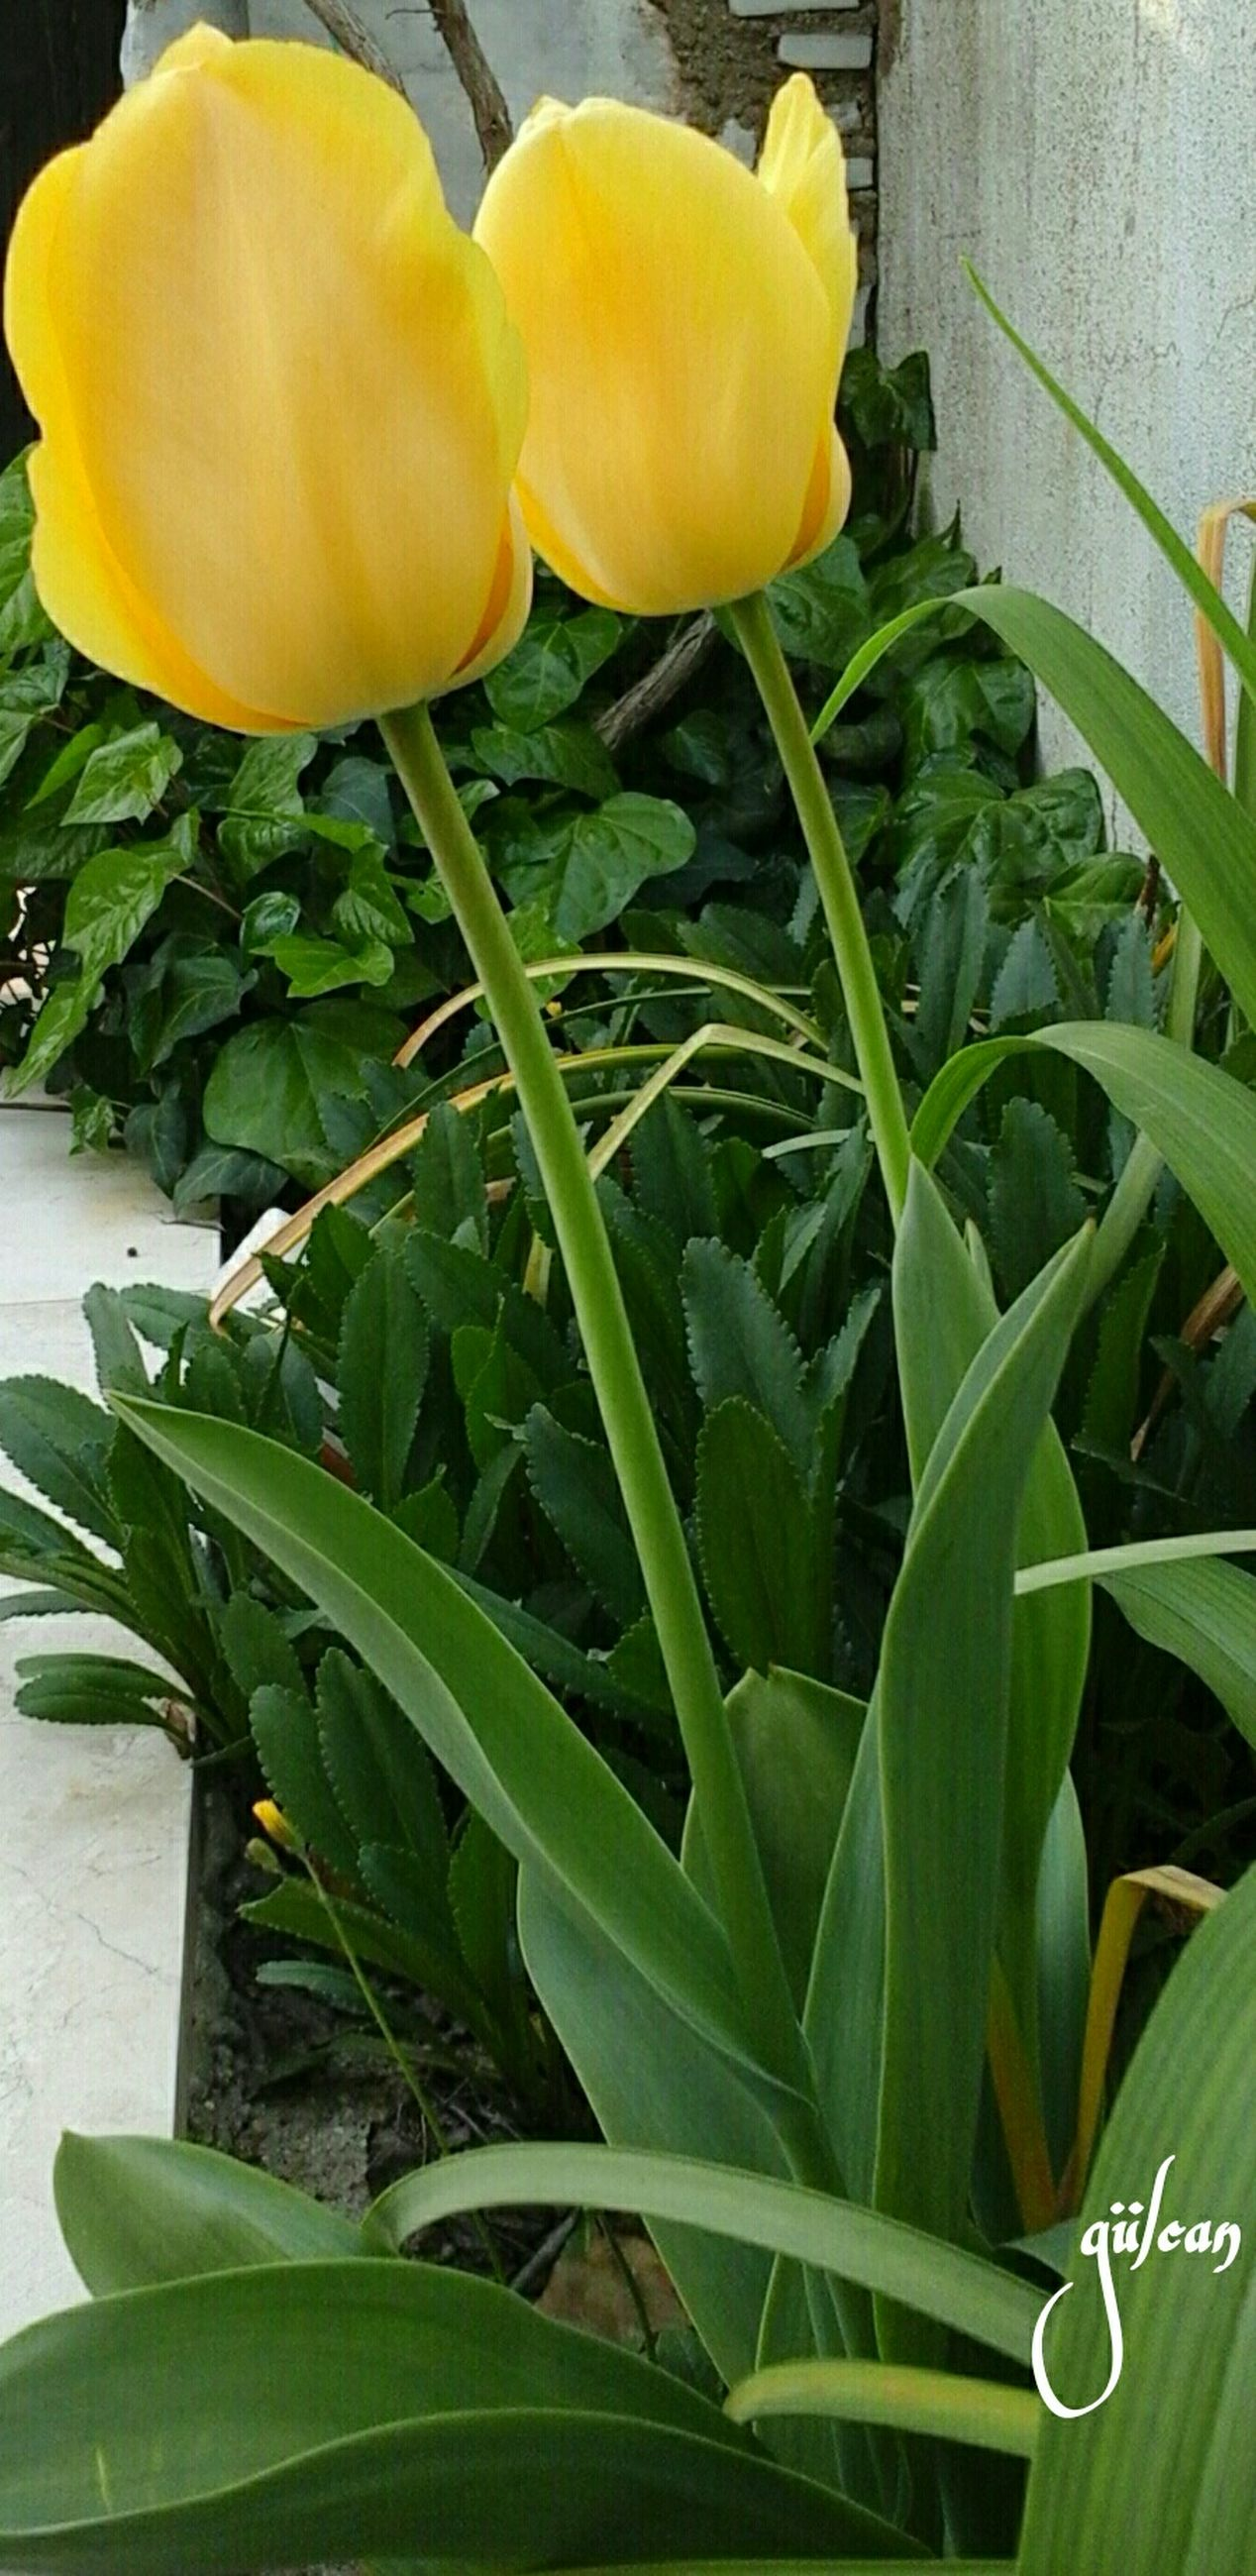 flower, yellow, freshness, fragility, leaf, plant, petal, growth, green color, flower head, close-up, nature, potted plant, front or back yard, tulip, stem, beauty in nature, day, high angle view, blooming